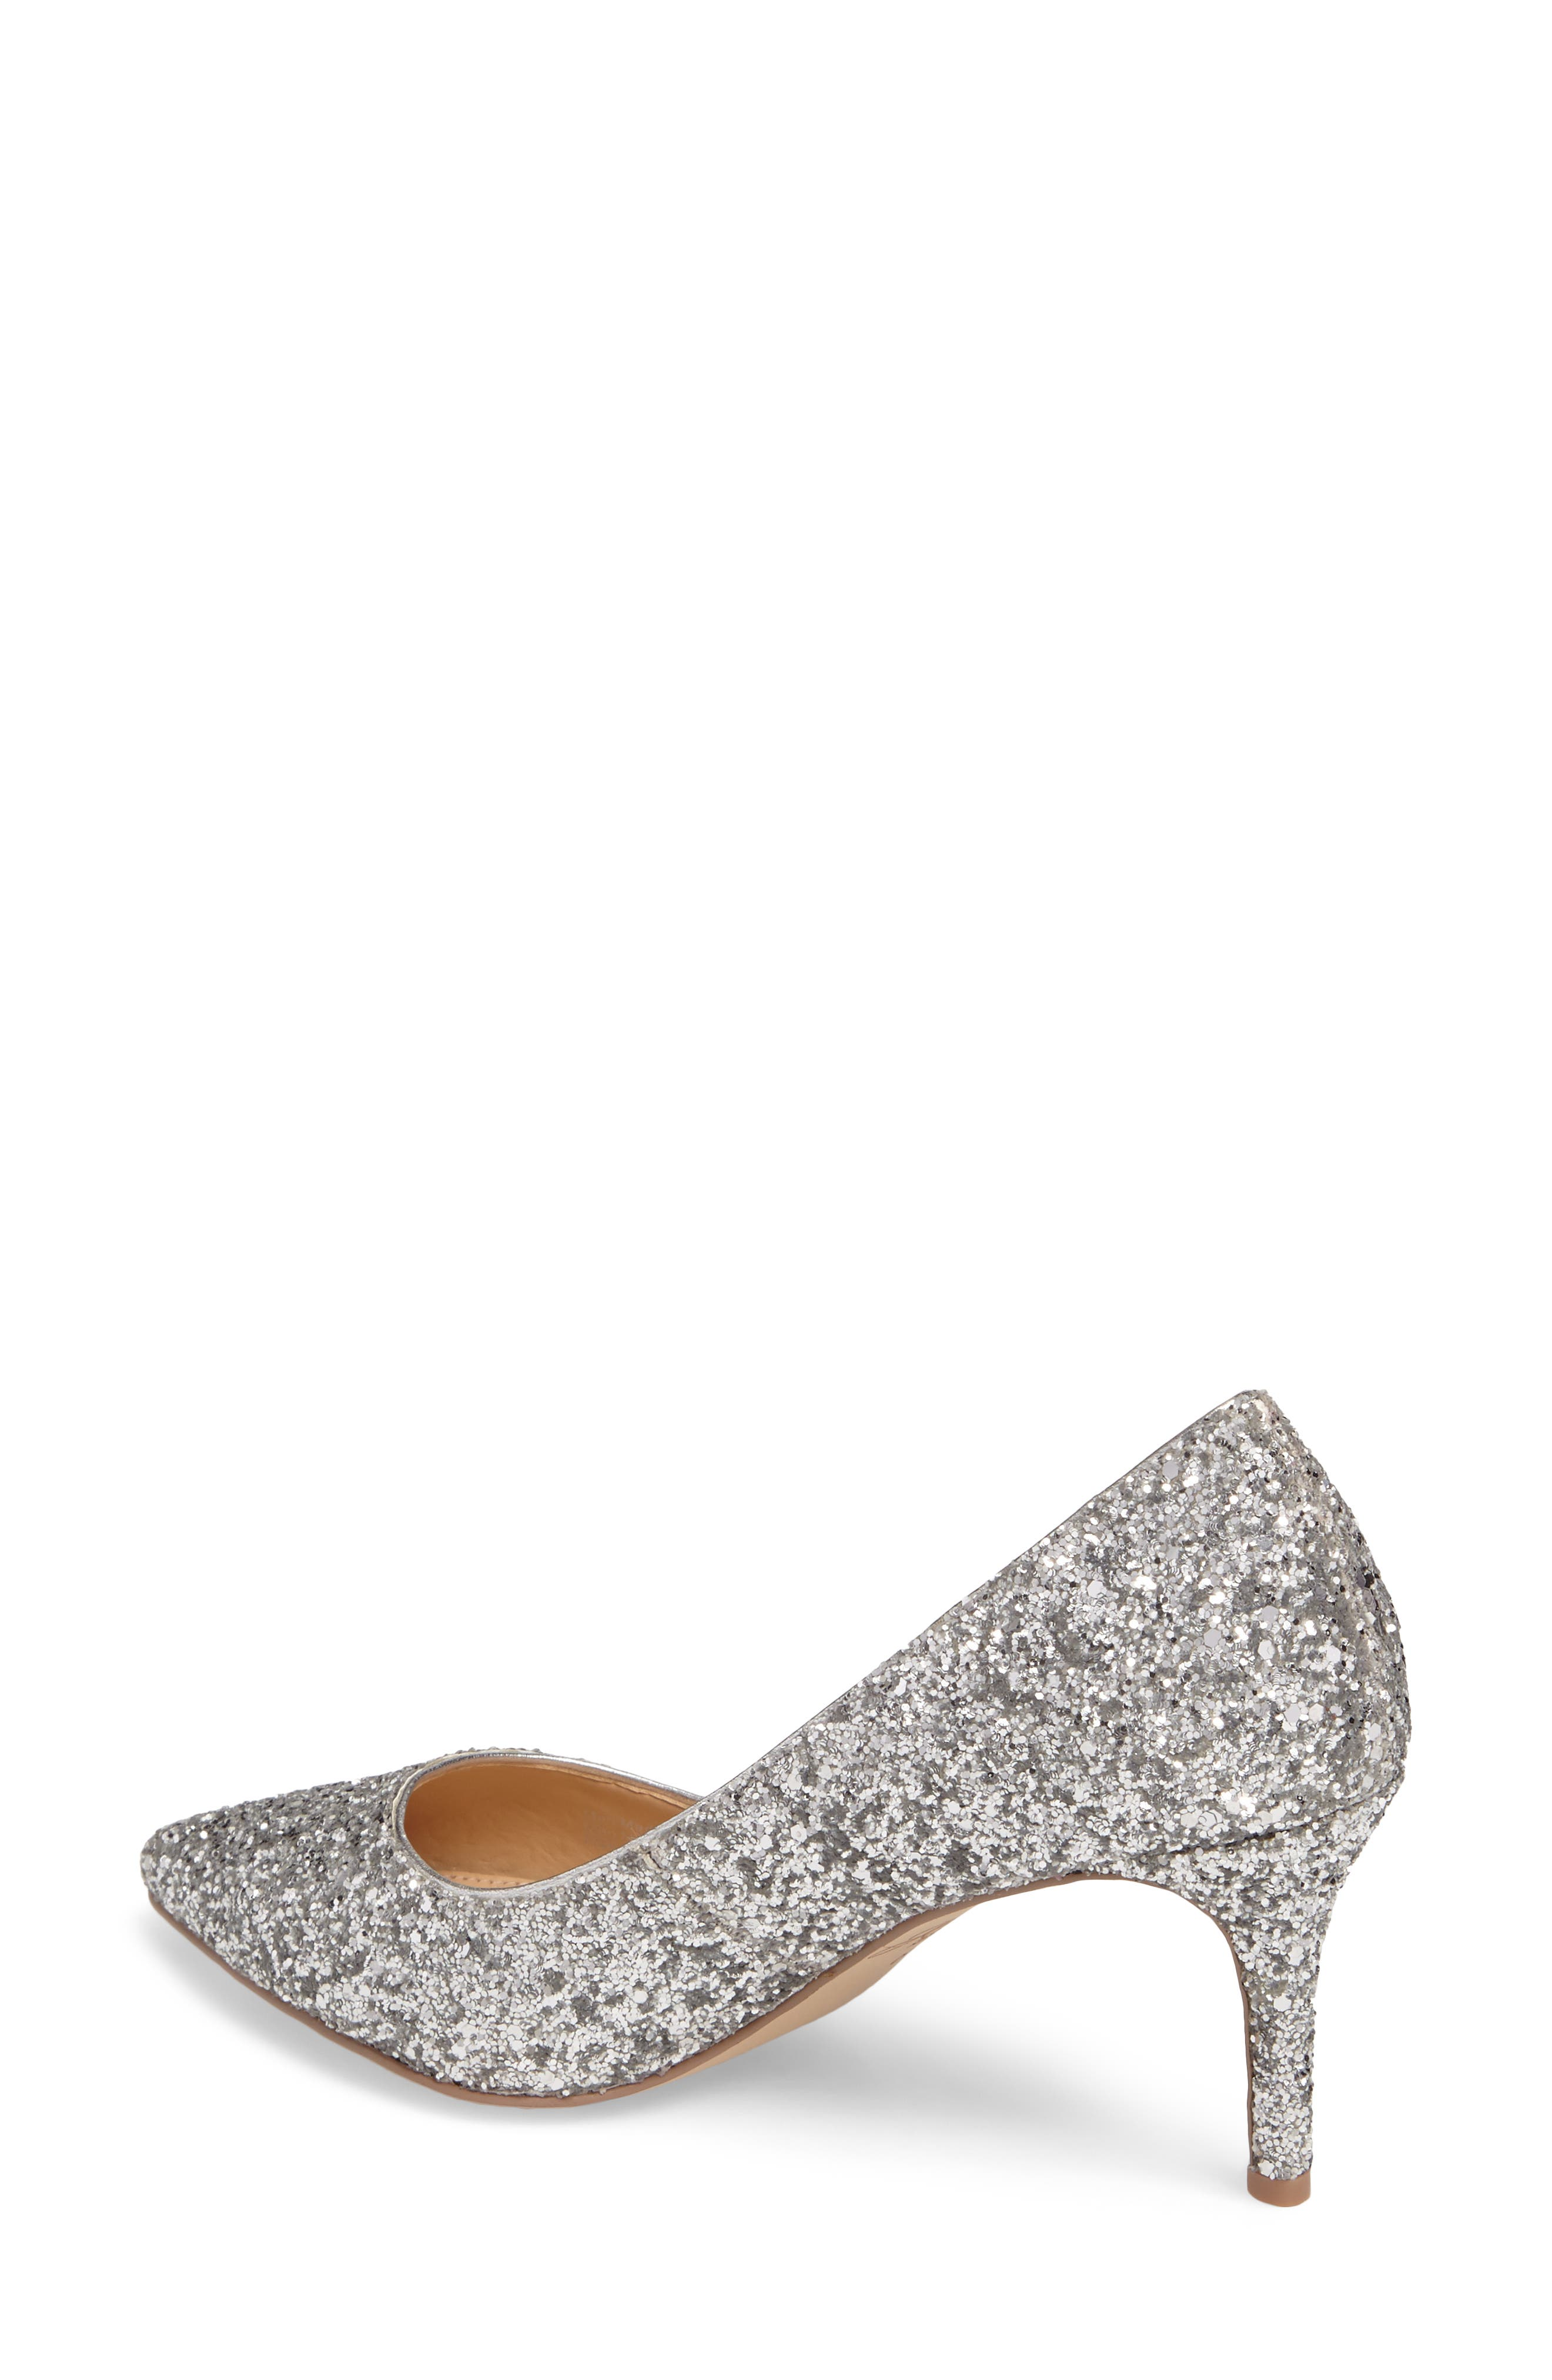 Lyla Glitter Pointy Toe Pump,                             Alternate thumbnail 2, color,                             Silver